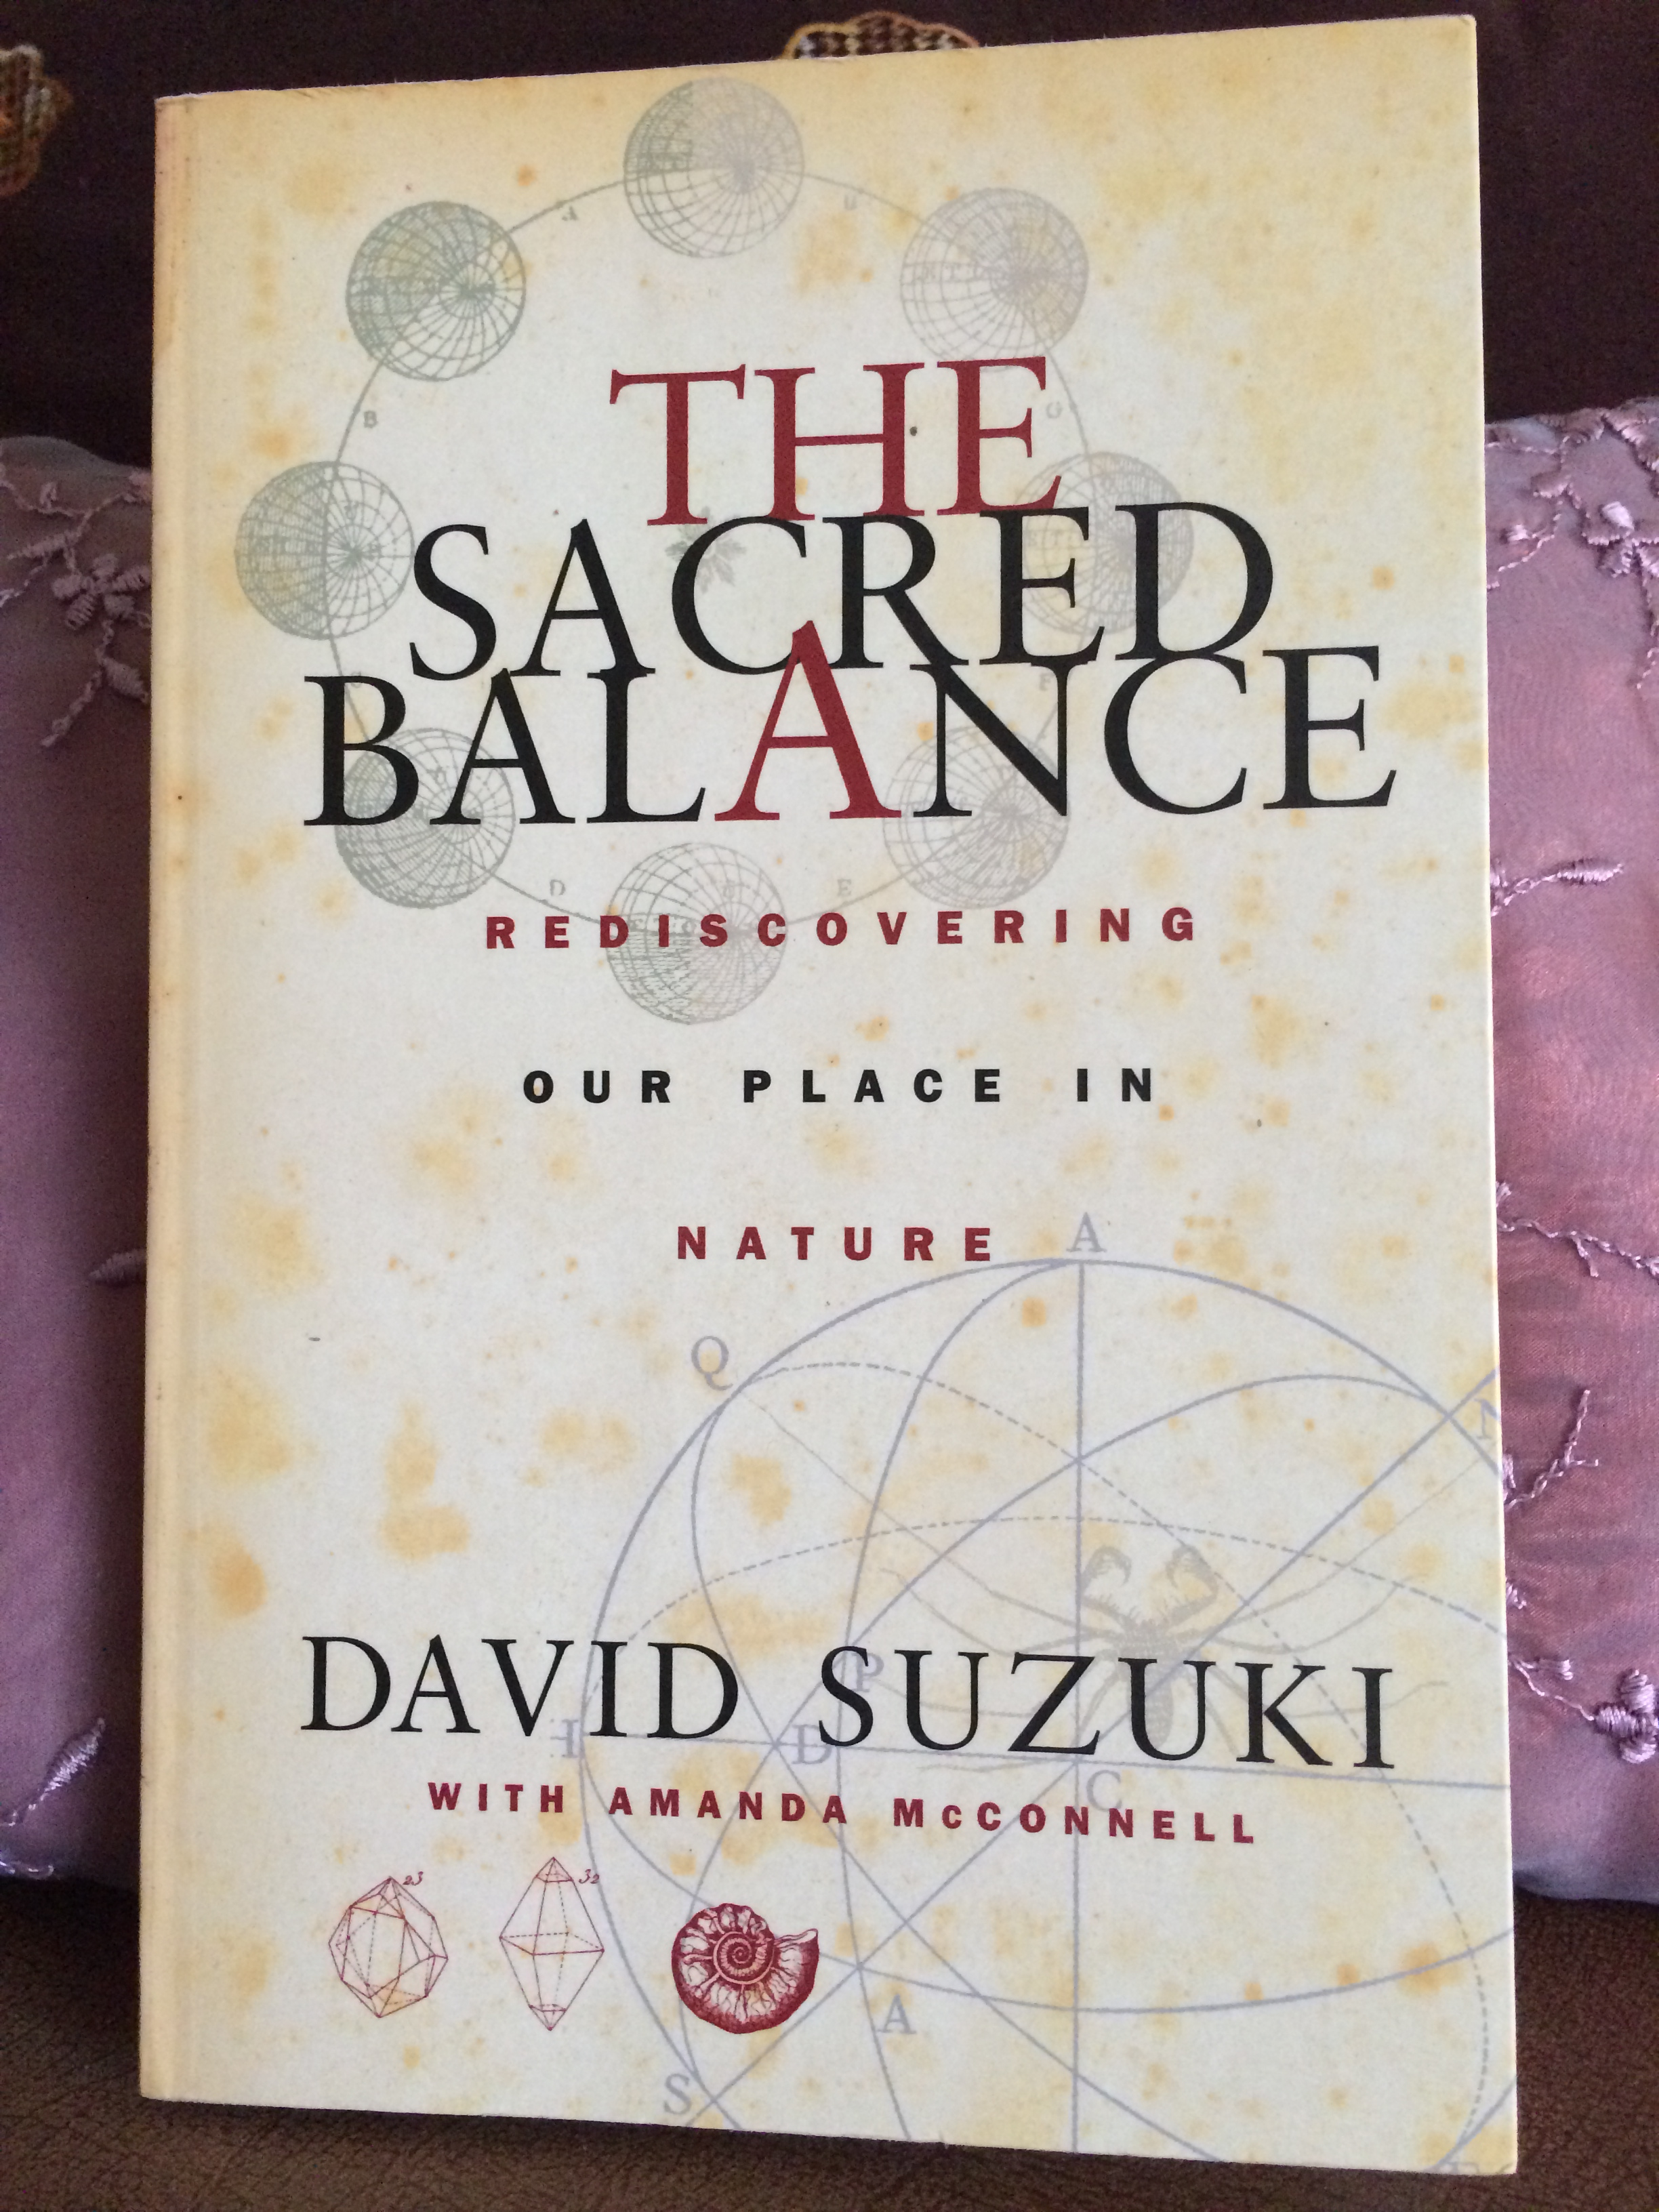 david suzuki the sacred balance thesis The sacred balance is david suzuki's way of showing us the relationship between humans and nature the book first tells of how nature is much bigger and more significant than the human race, and how the environment surrounding humans is far more important than humans themselves.